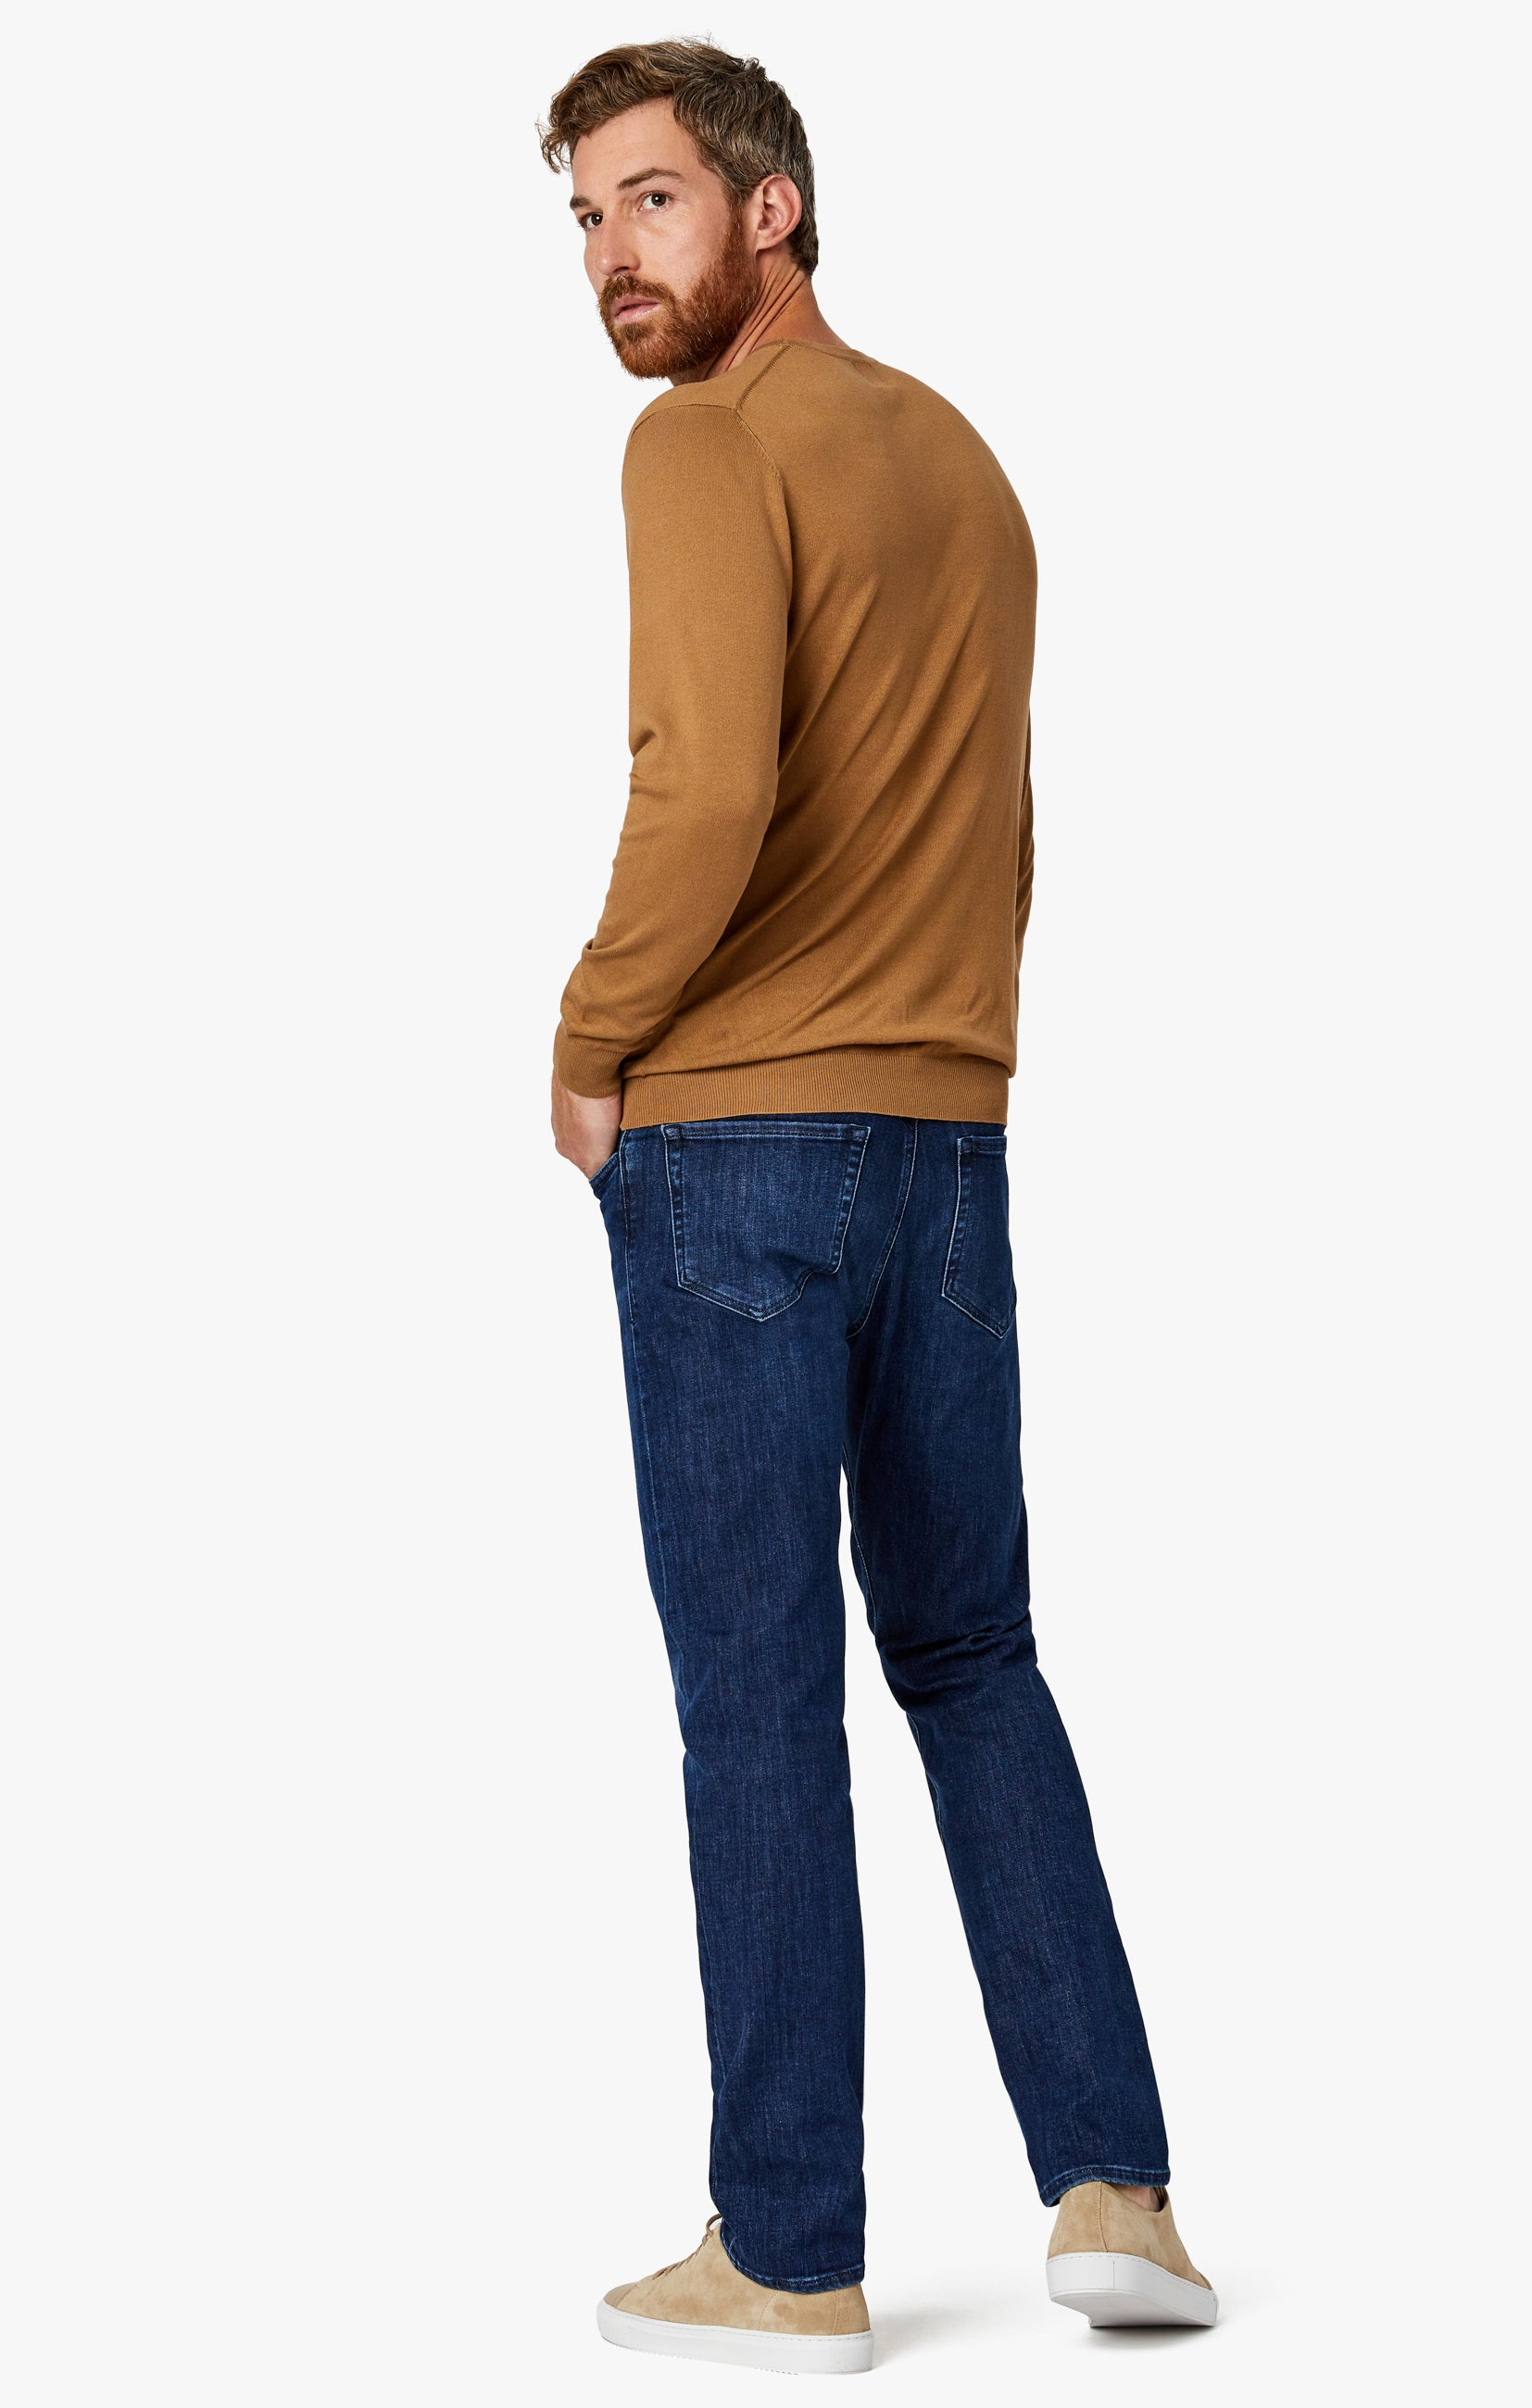 Charisma Classic Fit Jeans in Dark Coolmax Image 4